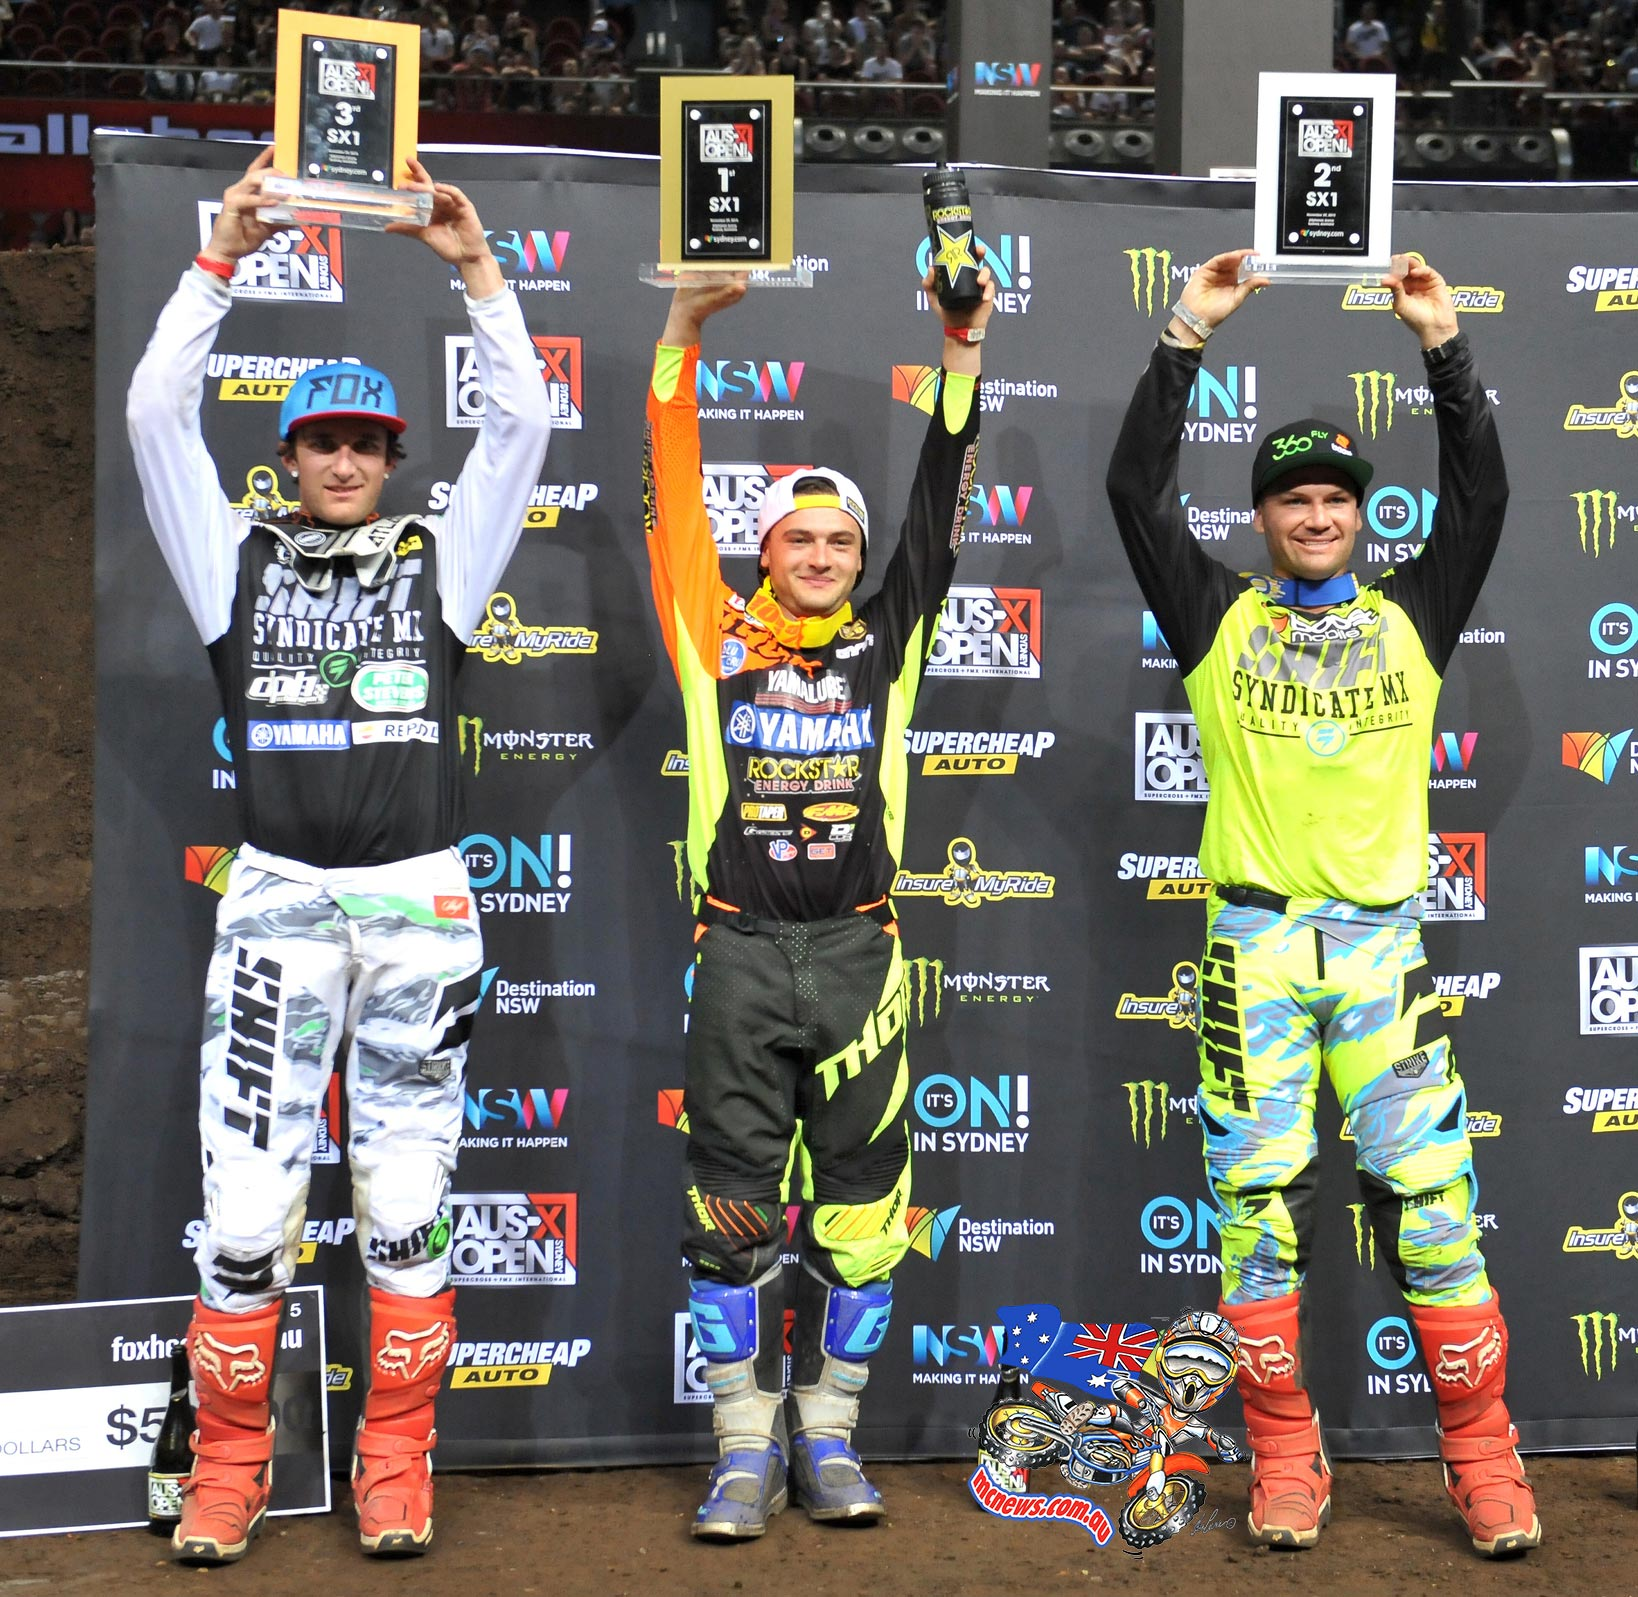 AUS-X Open podium (left to right: Lawson Bopping, Cooper Webb, Chad Reed)